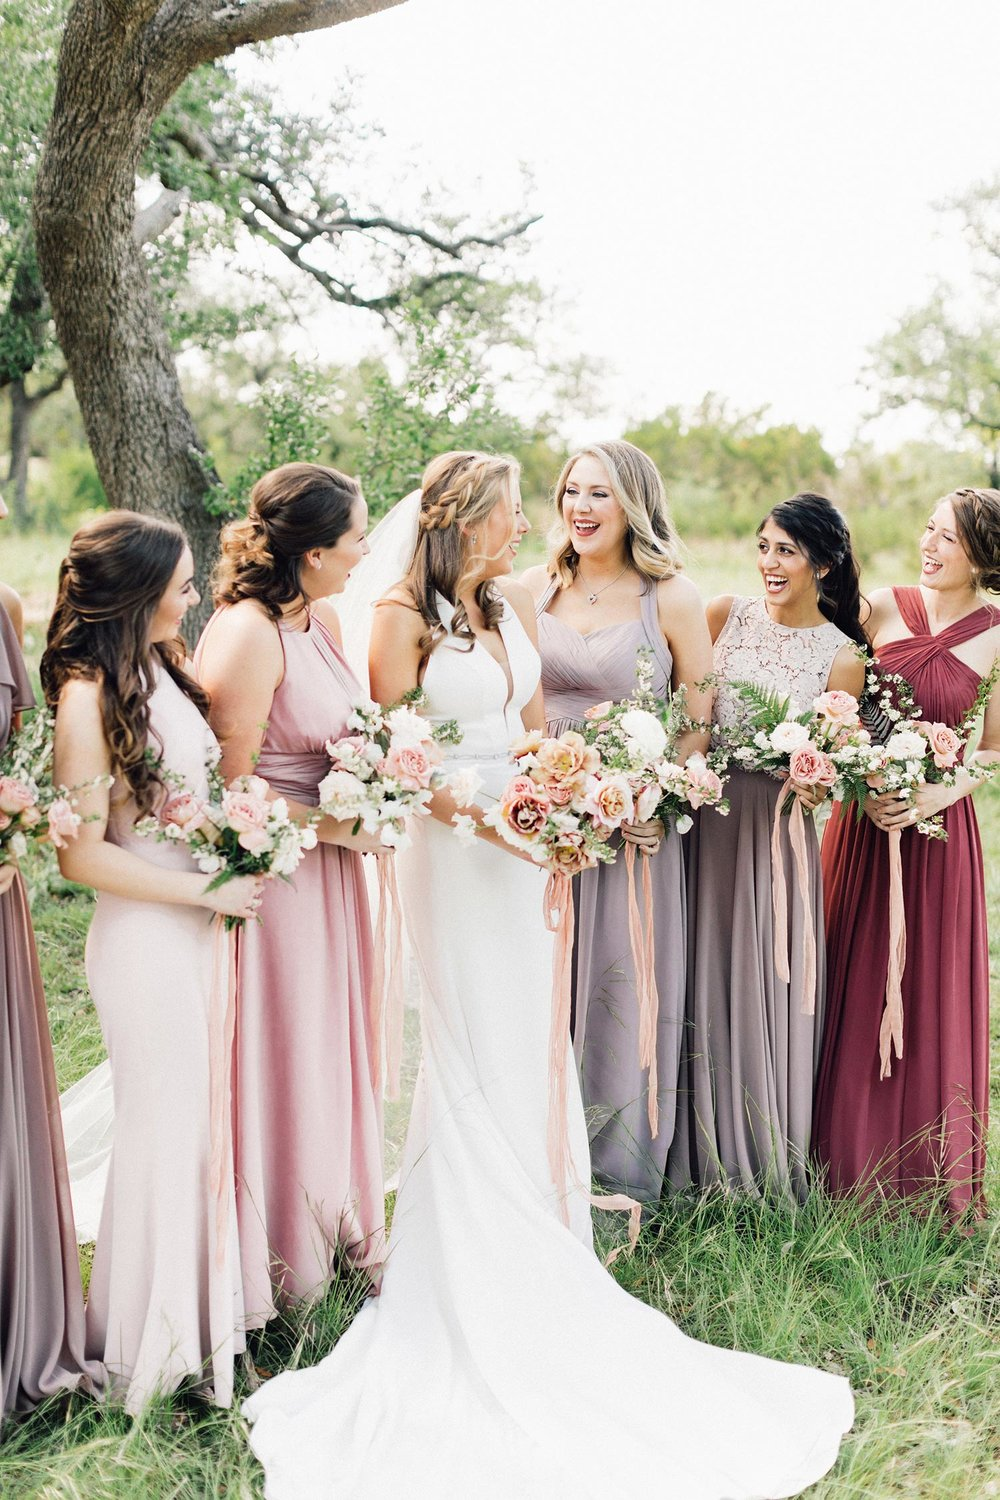 Bridal party florals by Color Theory Collective